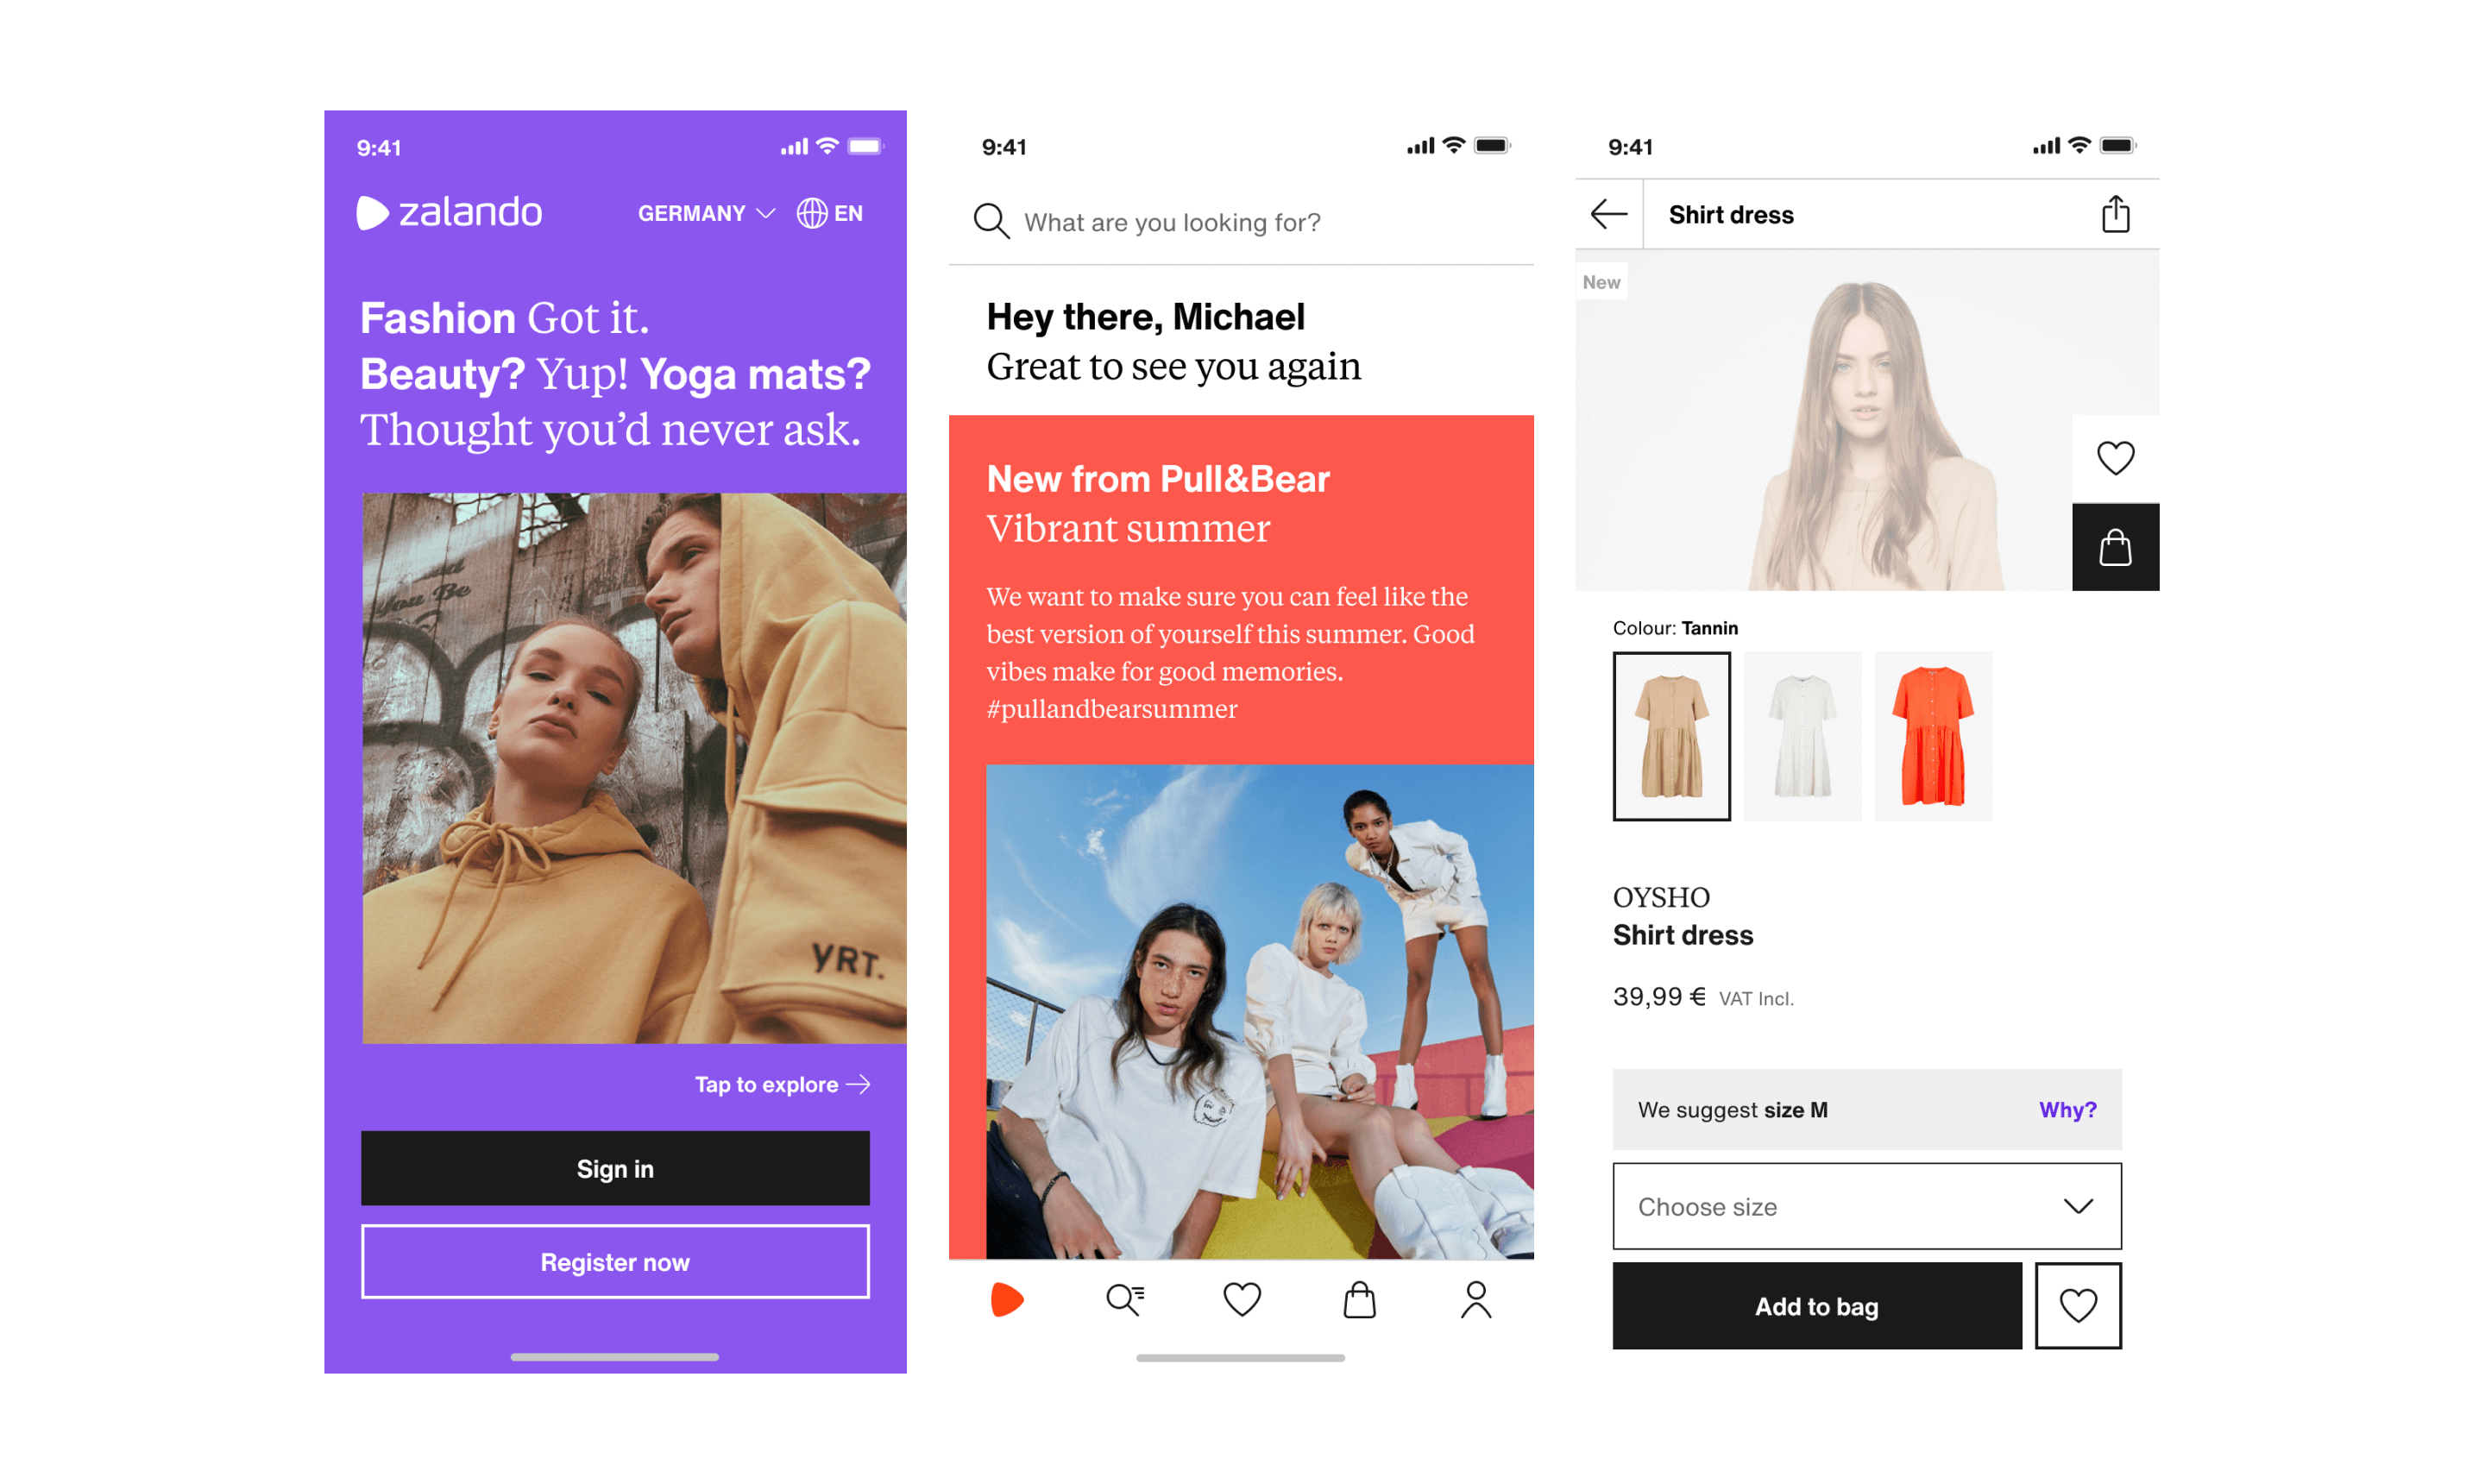 A few examples of the type pairing in the current experience on the Zalando app